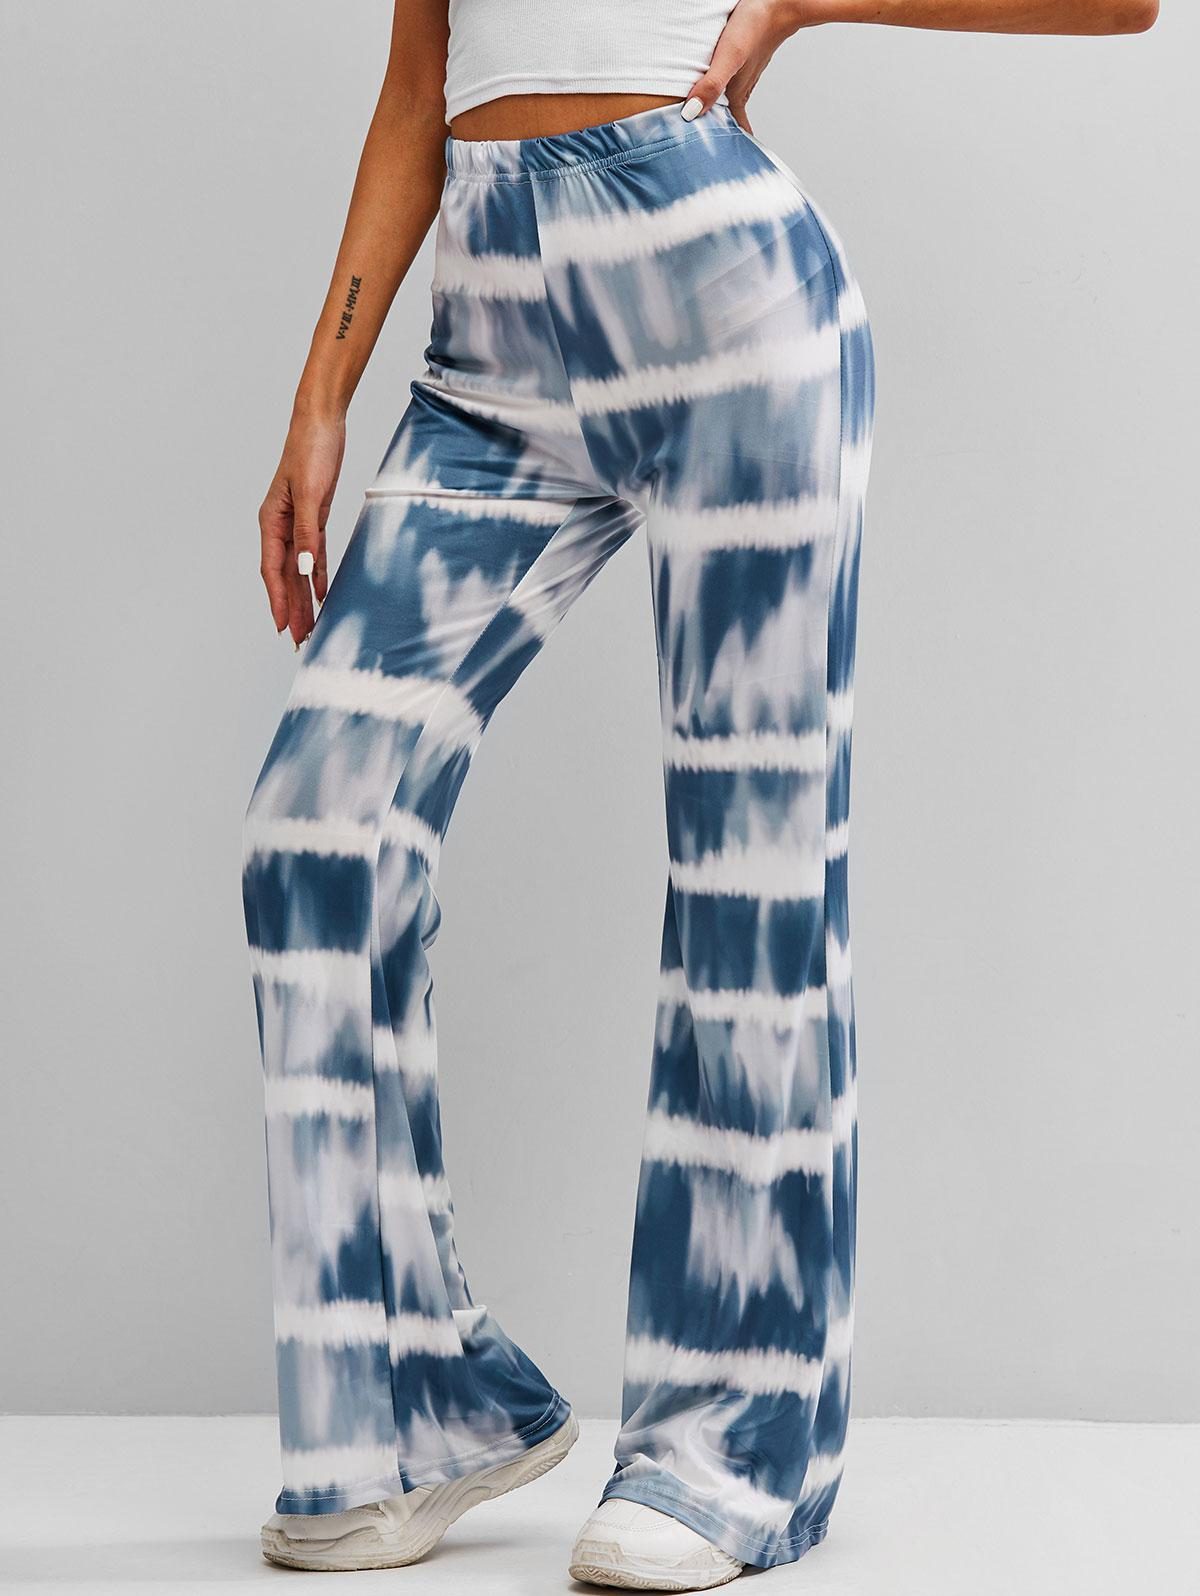 High Waisted Tie Dye Flare Pants